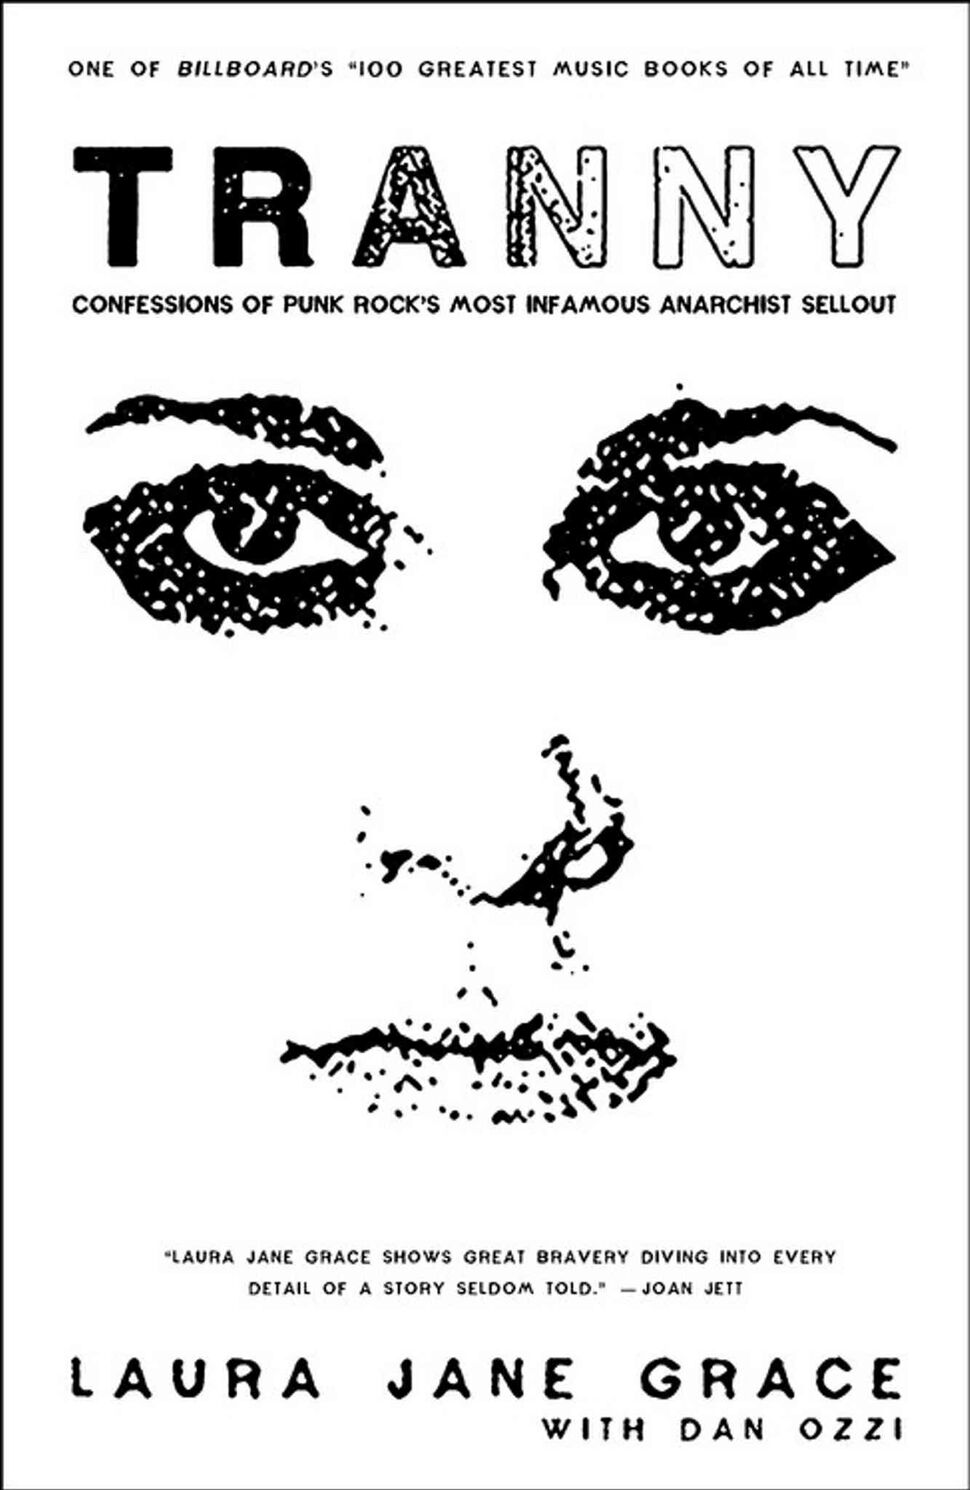 <h3>Tranny: Confessions of Punk Rock's Most Infamous Anarchist Sellout</h3> <br/> By Laura Jane Grace <br/> <strong>Against Me! founder and lead singer Laura Jane Grace shares the concurrent tale of her rise to fame and descent into transgender dysphoria blues which nearly costs her the band and her life. A warts-and-all look at the crash-and-burn millennial U.S. punk scene and a meditation on being transgender in an often hostile world.</strong> <br/> — Lara Rae